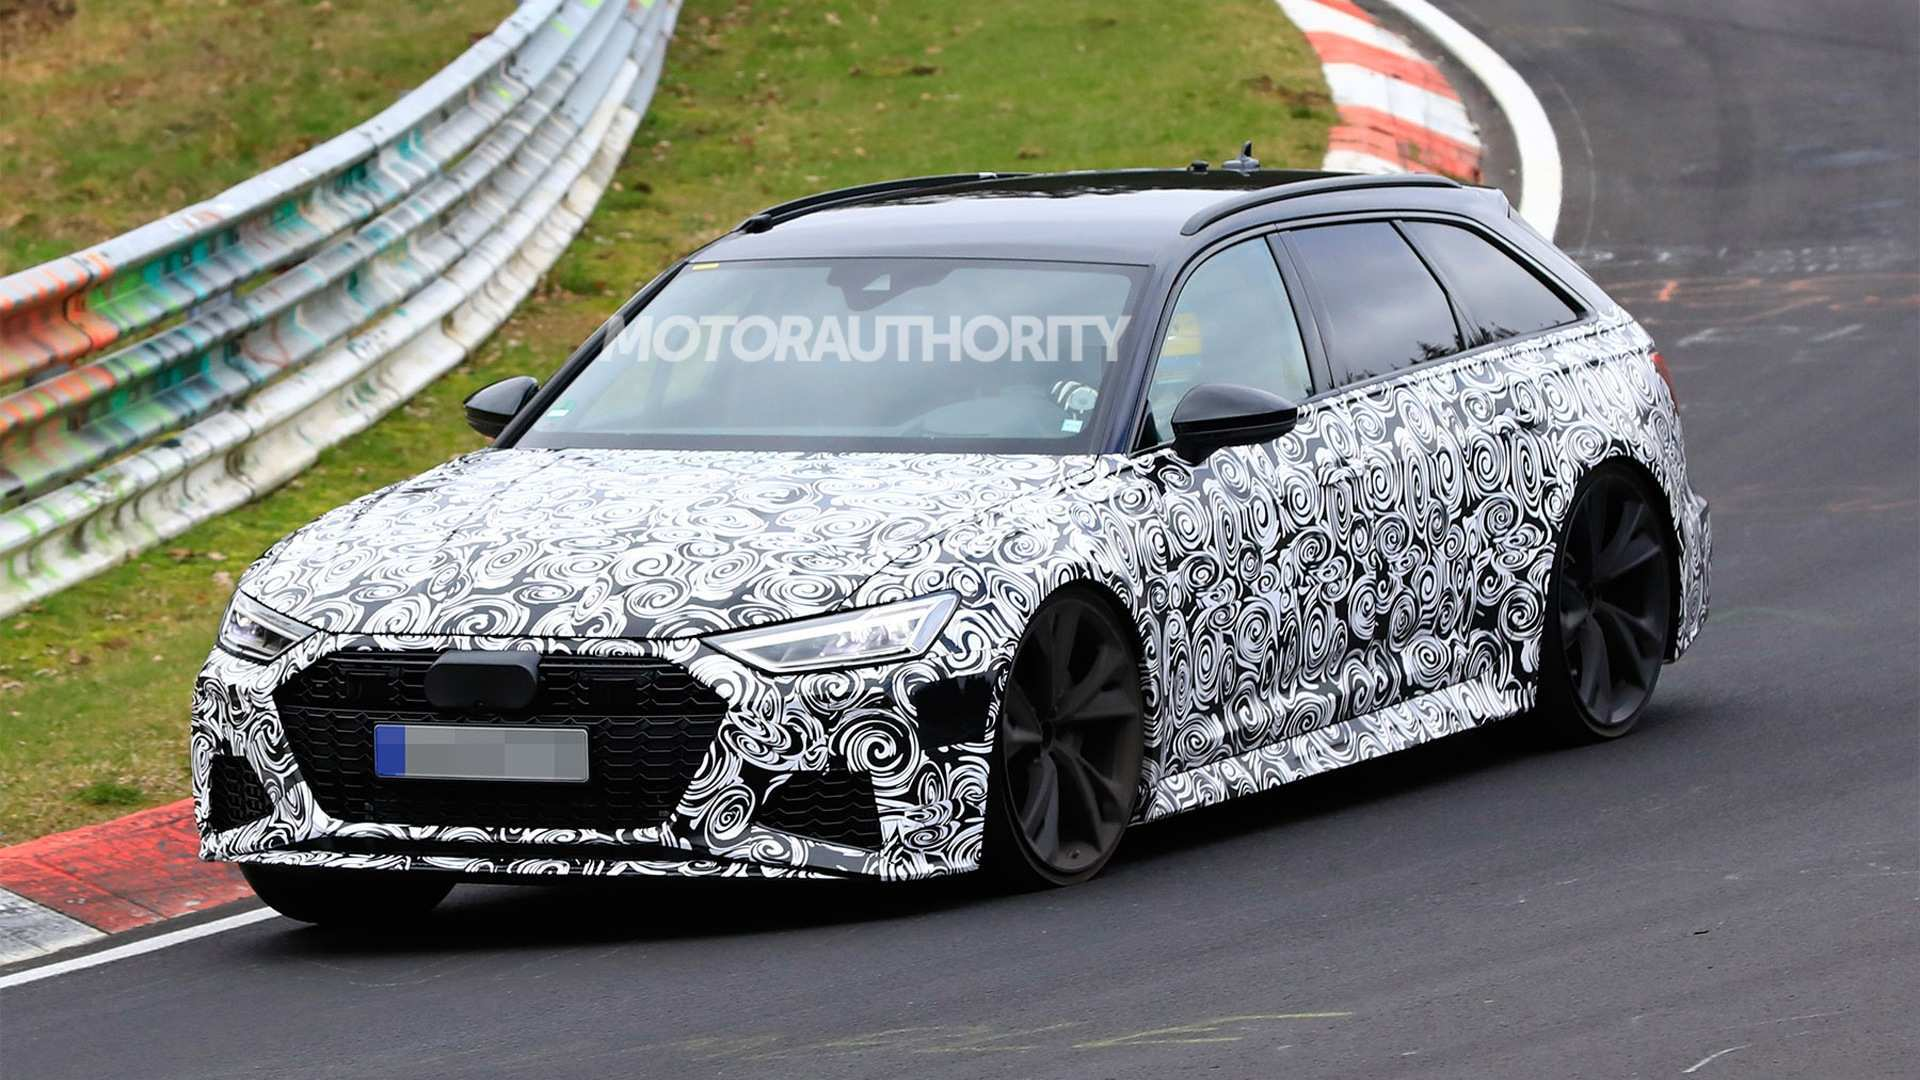 36 New 2020 Audi Rs6 Wagon Review